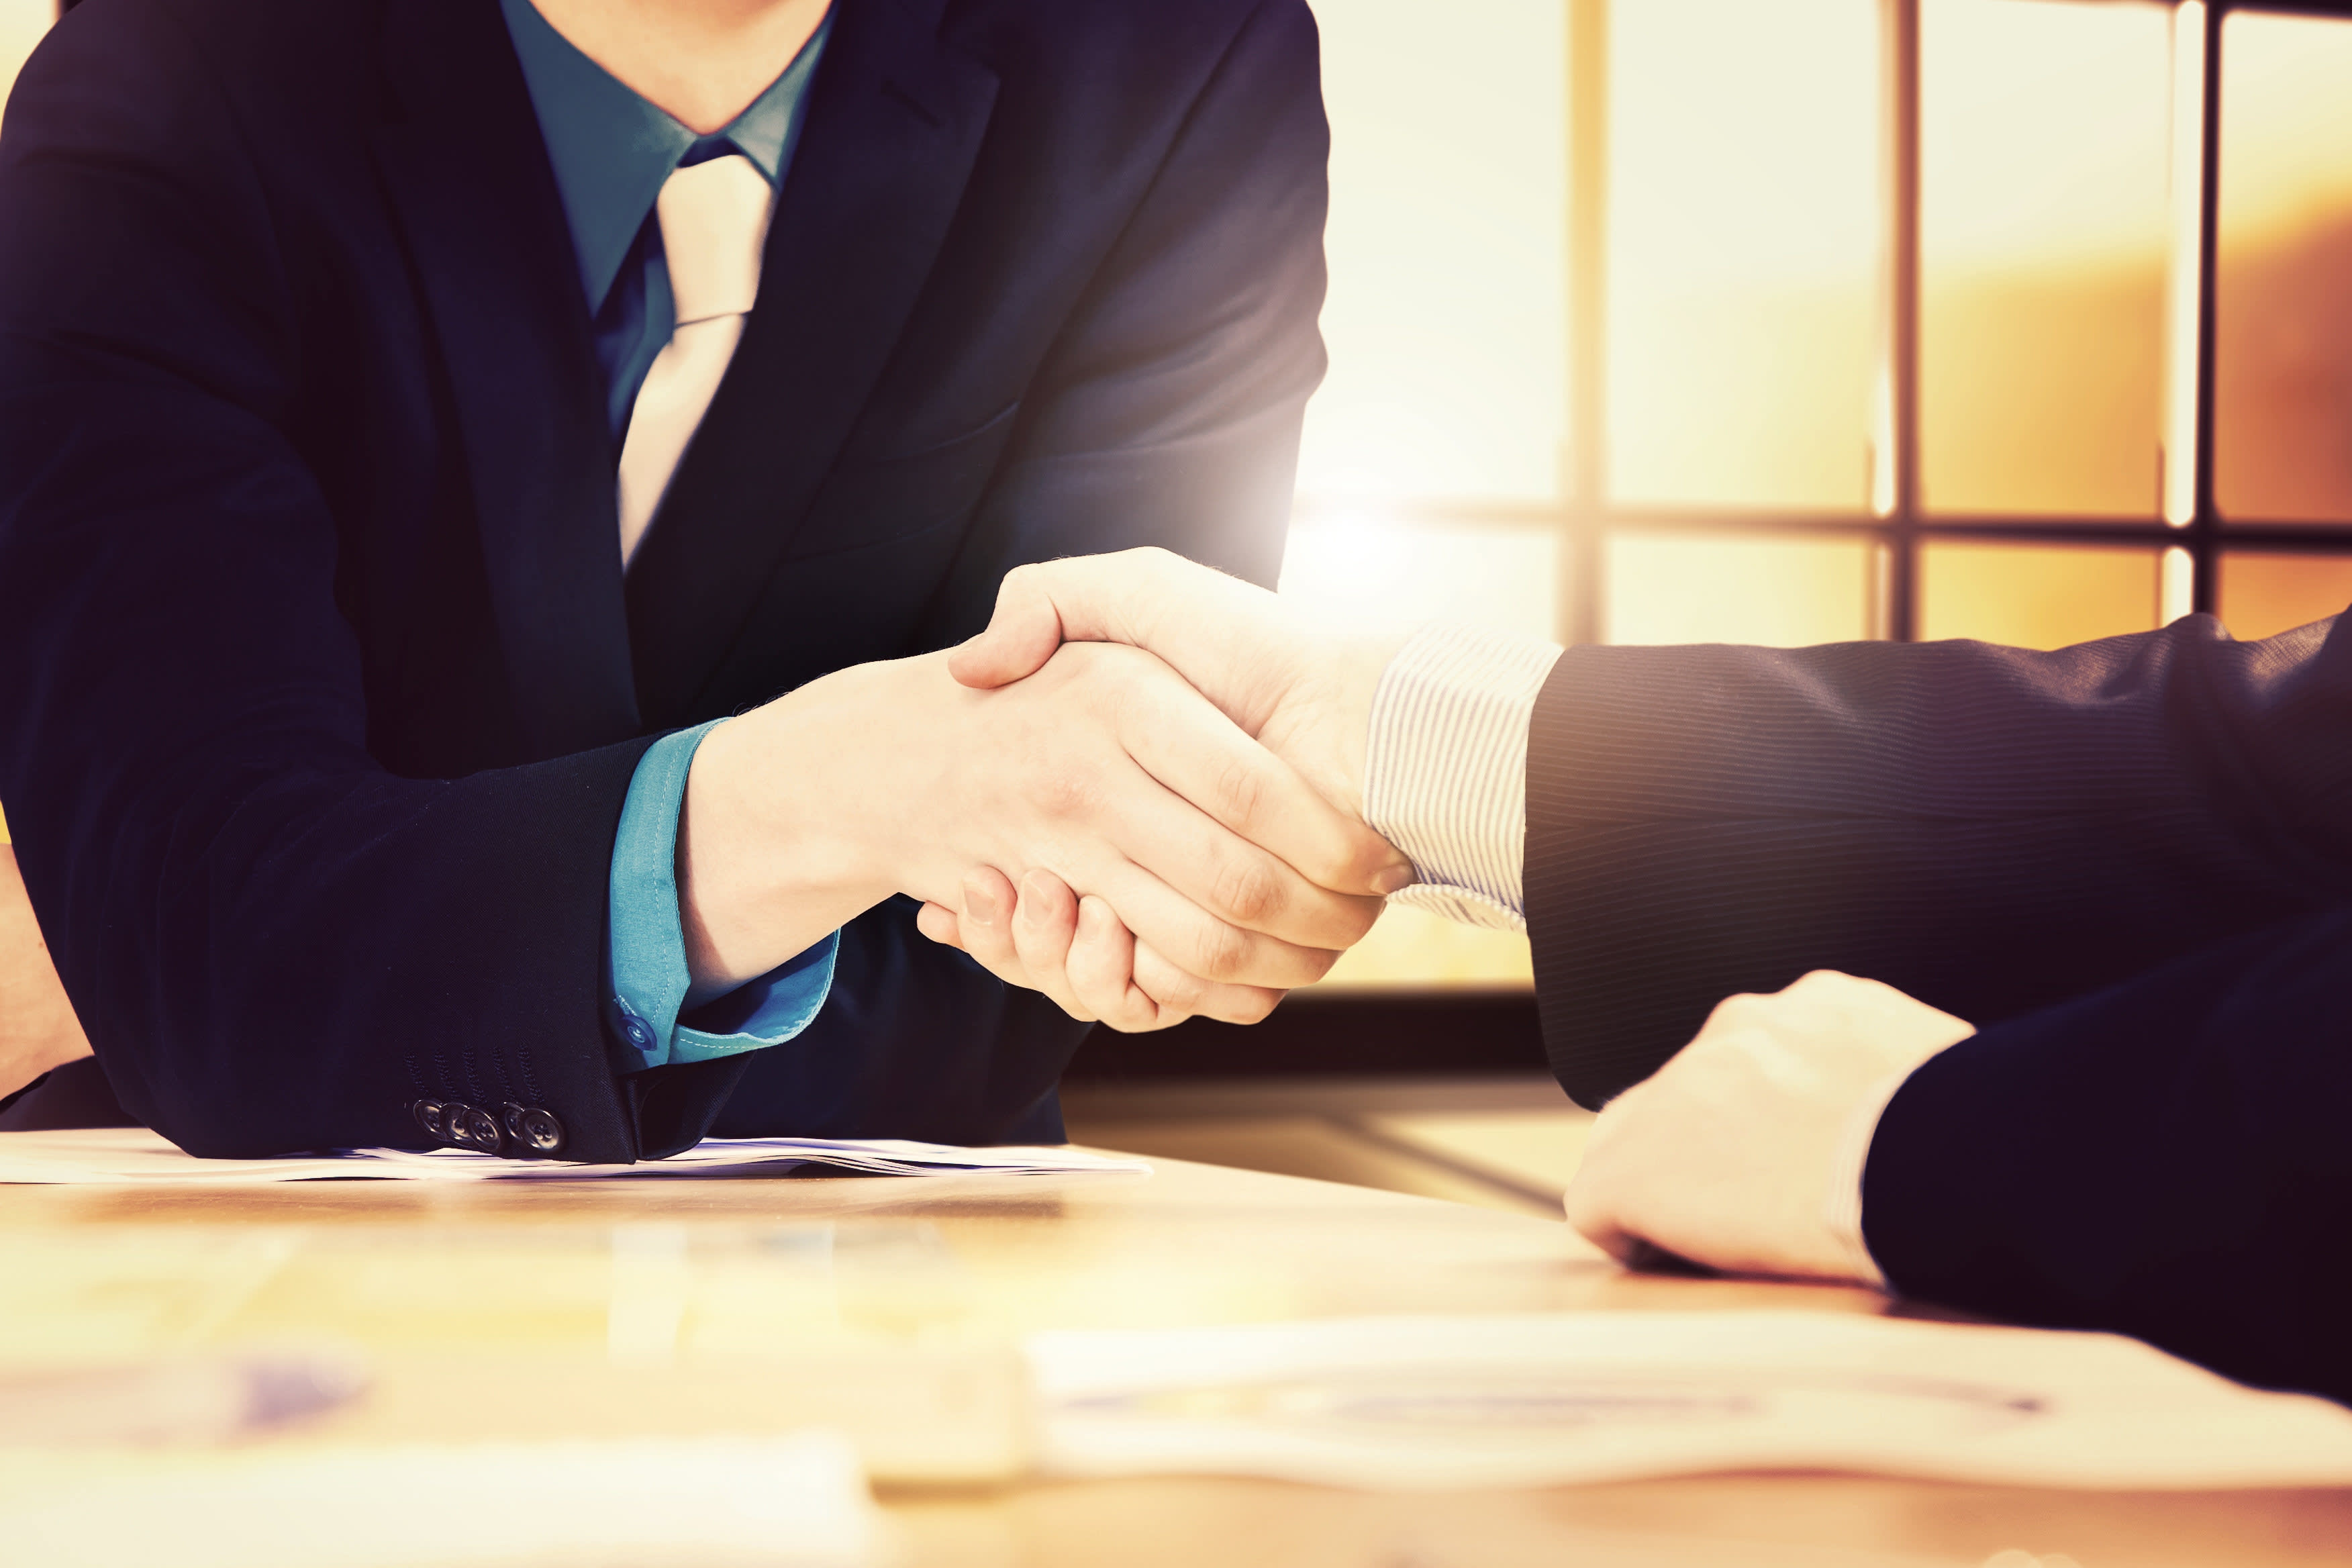 Openwork appoints Limon to grow network